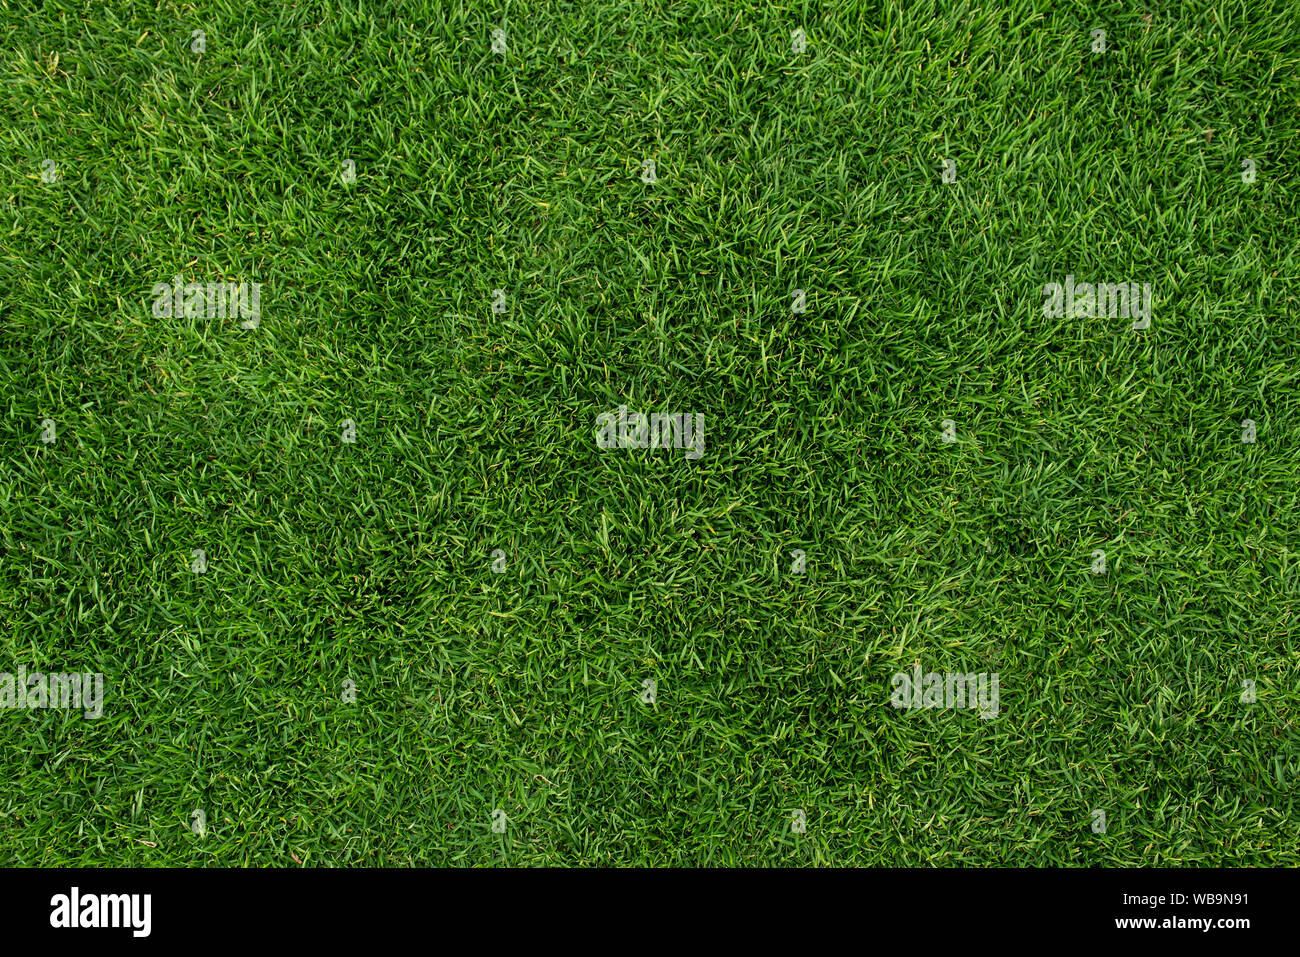 Seamless Healthy Green Grass Texture Rf Outdoor Background Natural Wallpaper Lawn Backdrop Stock Photo Alamy